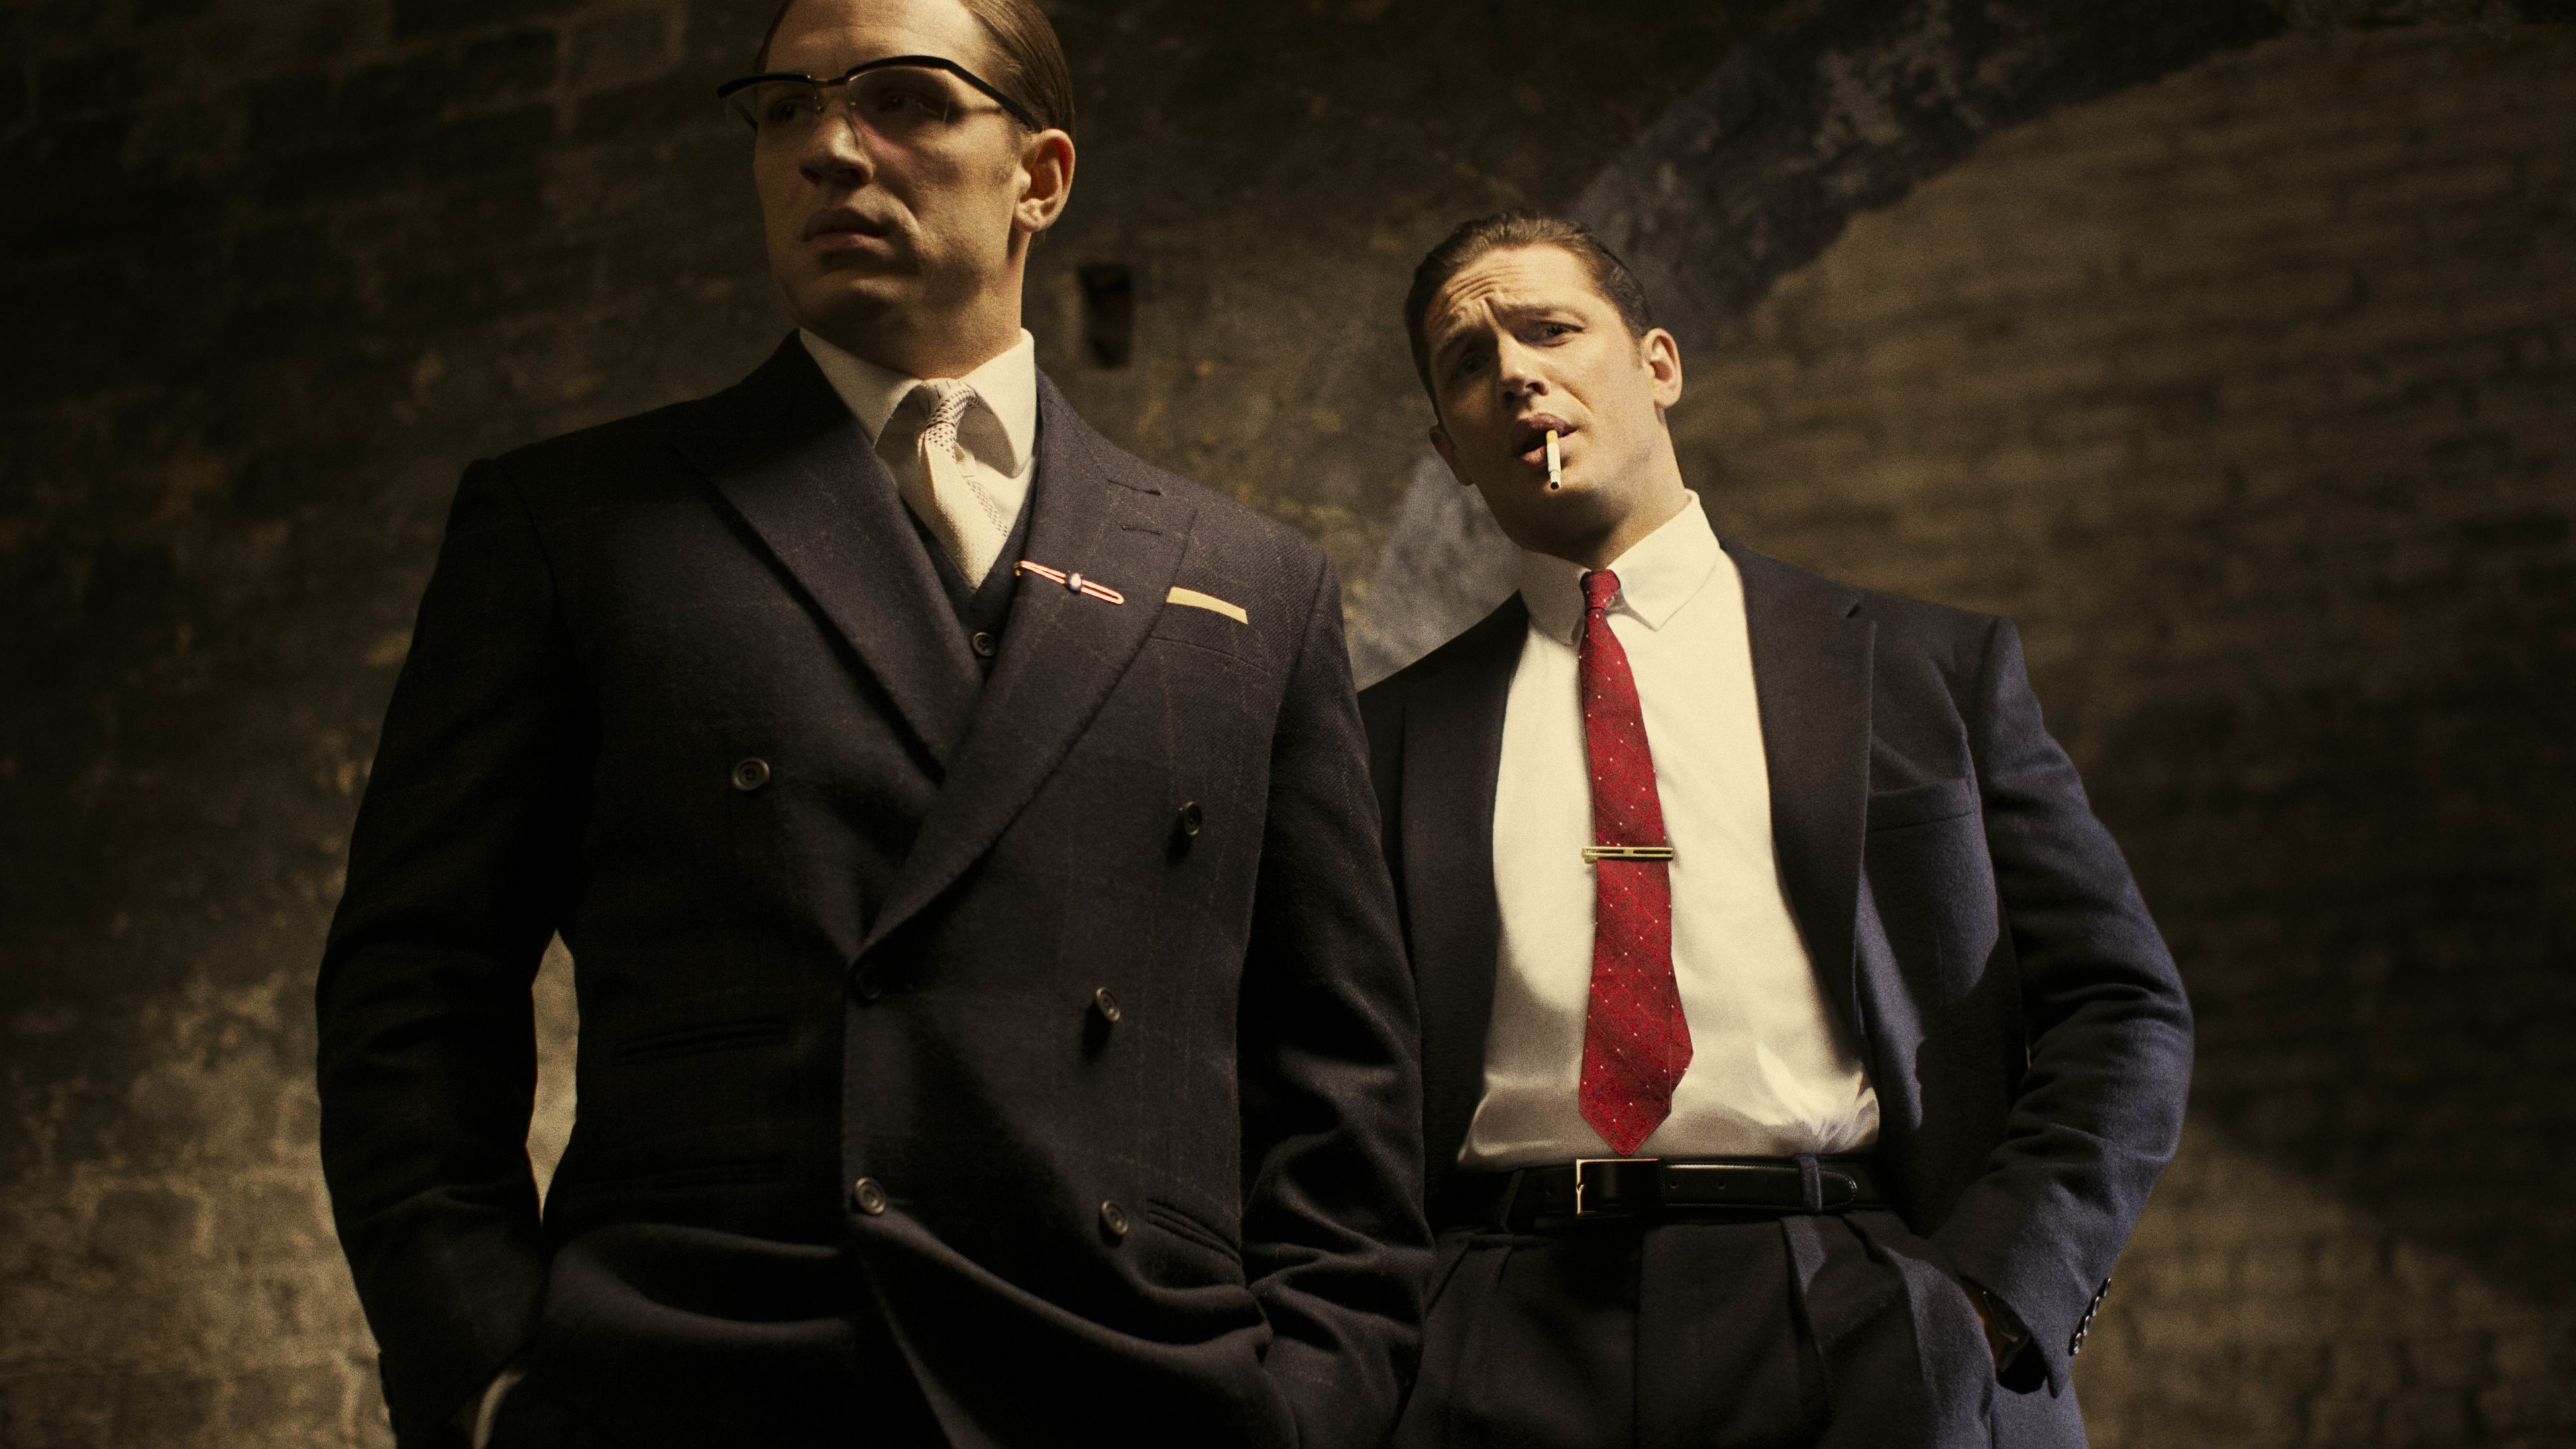 Wallpaper Legend Tom Hardy Emily Browning Movies 7224